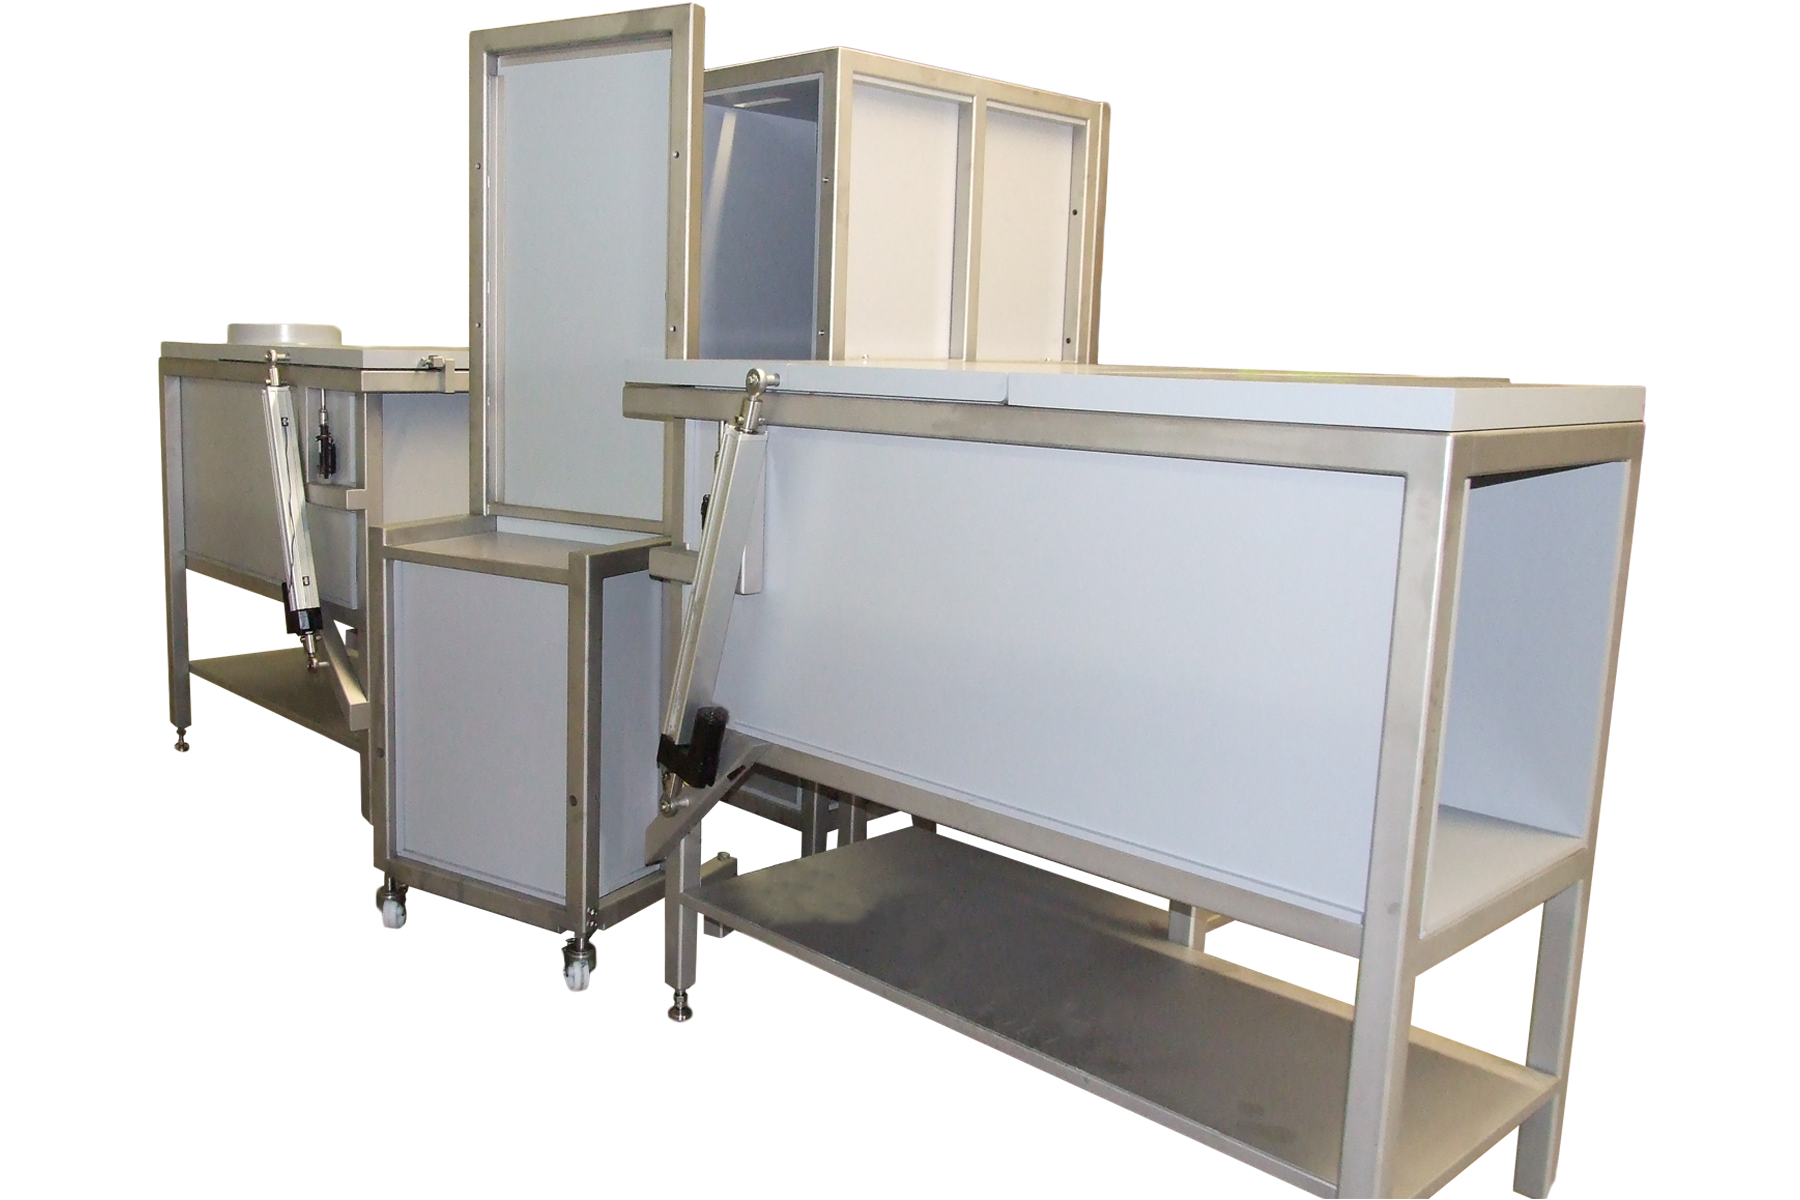 Lead radiation shielded food irradiation system